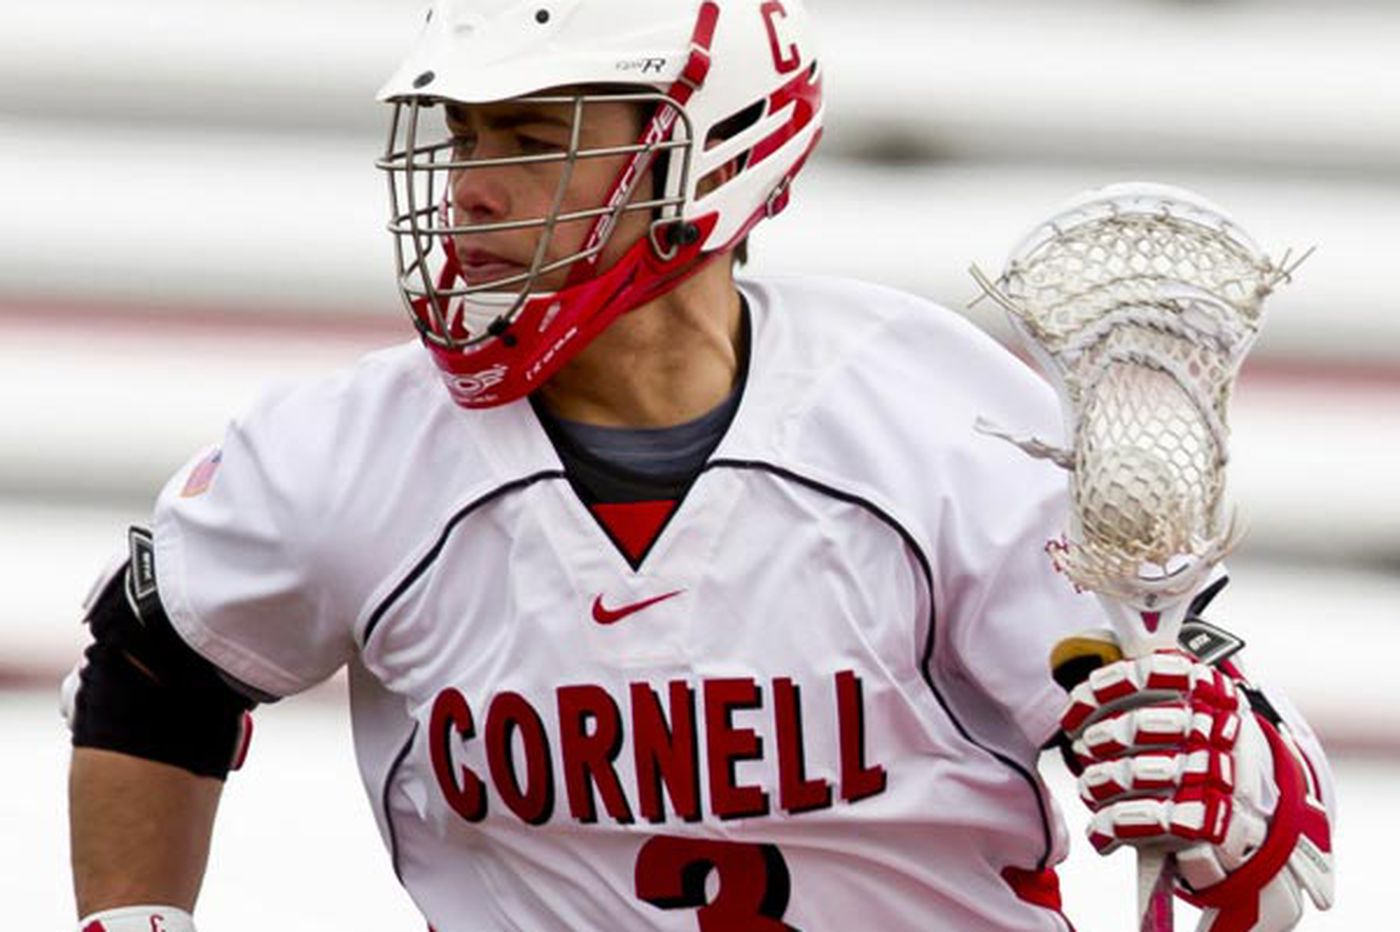 Upstart Cornell takes aim at Duke in lacrosse semifinals